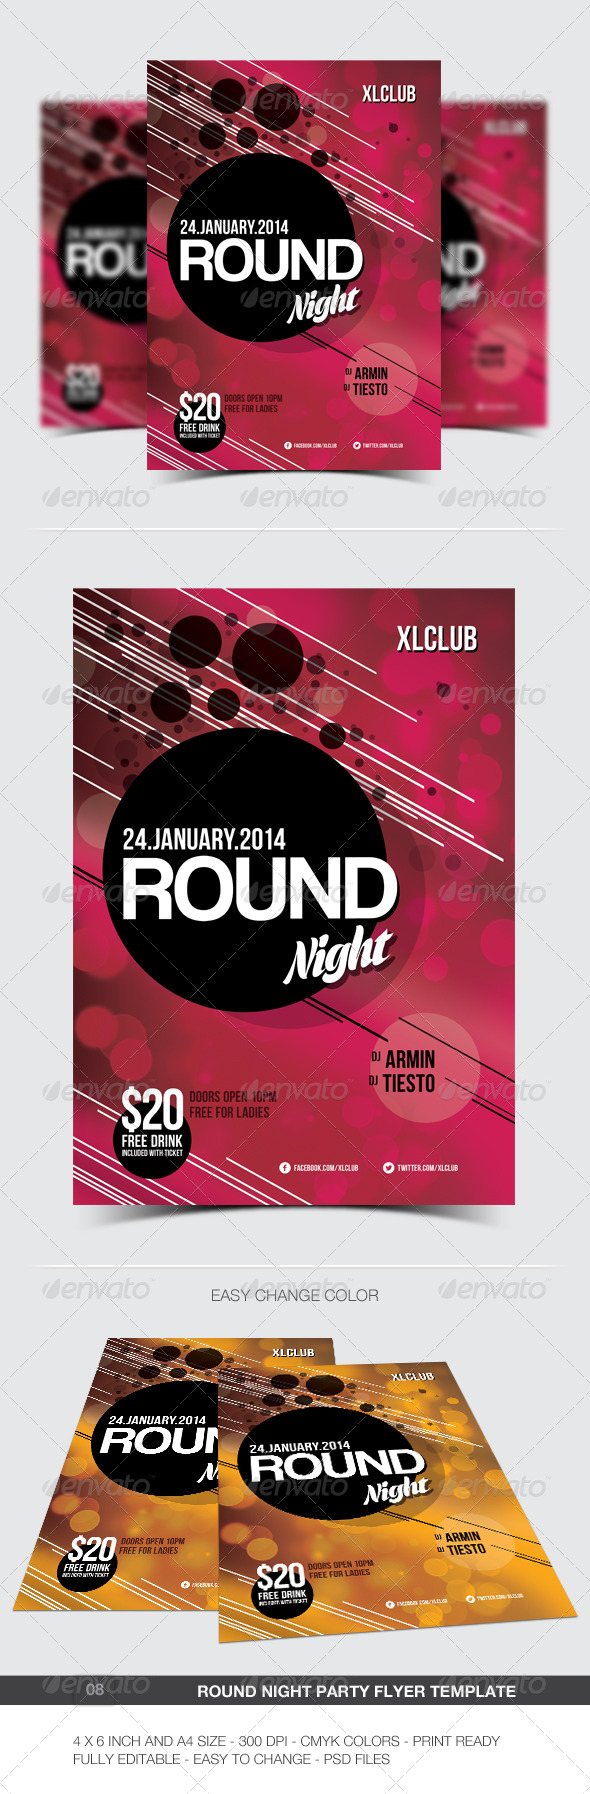 Round Night Party Flyer Poster 08